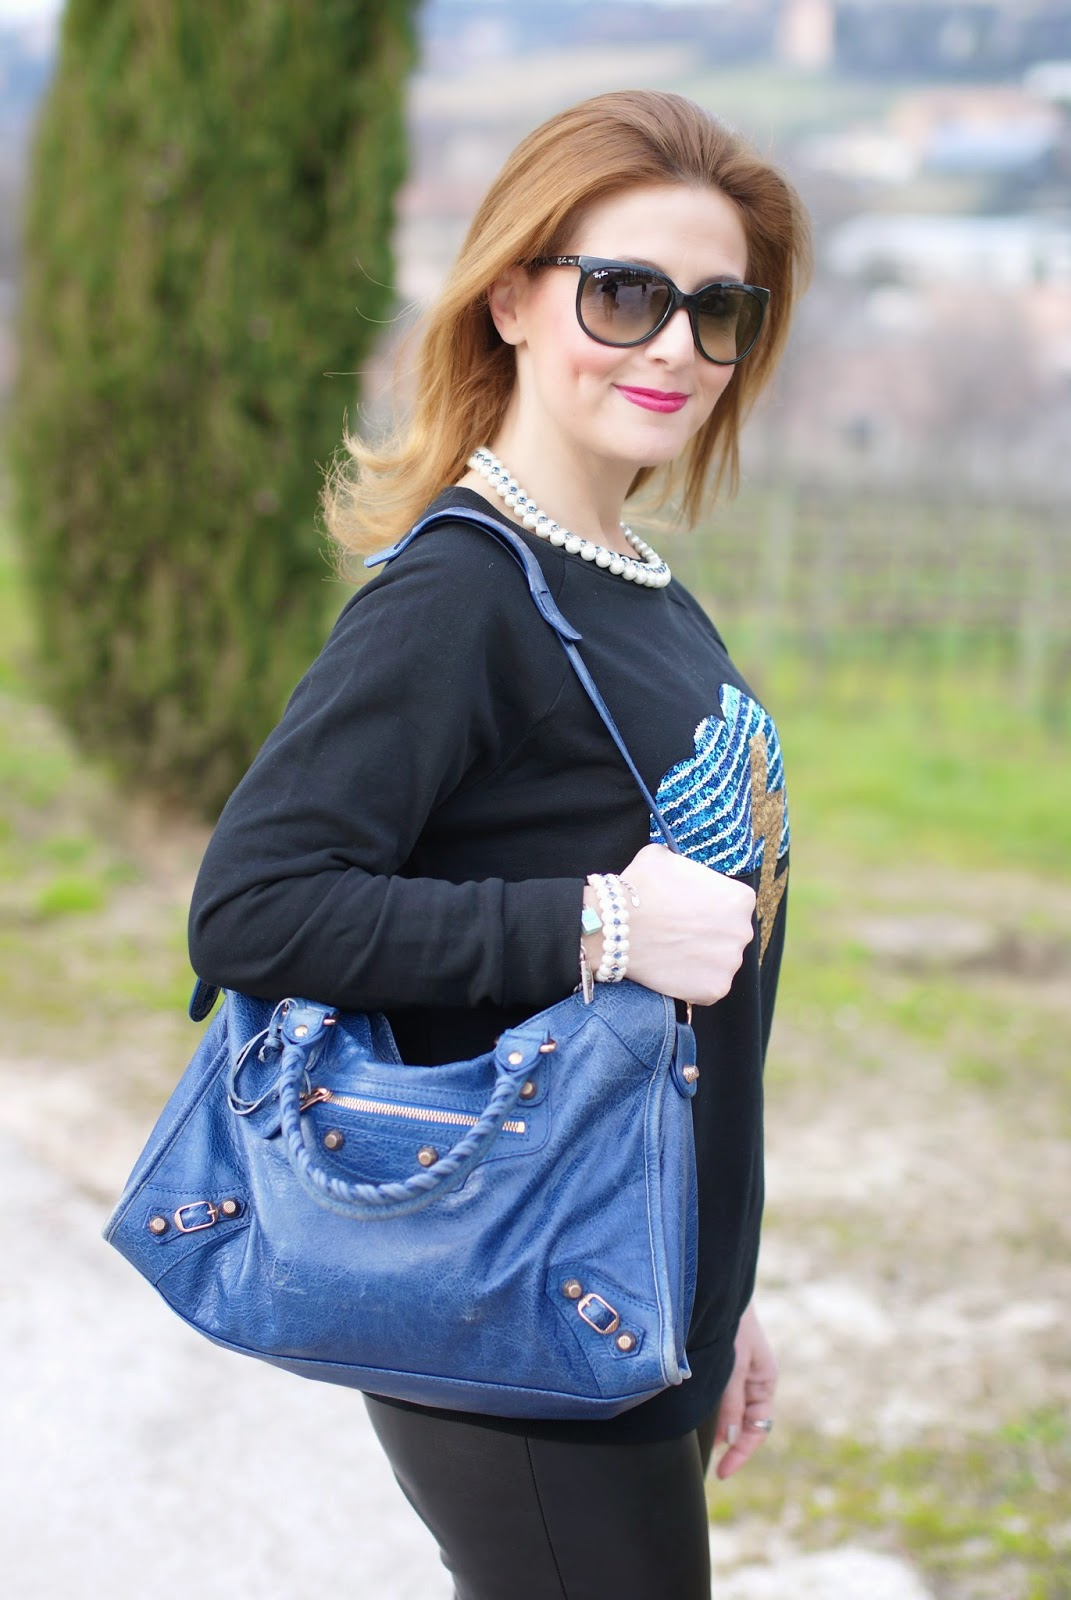 Balenciaga city bag blue, Luca Barra collana perle, sunglassesshop italia ray-ban cat eye sunglasses, Fashion and Cookies fashion blog, fashion blogger